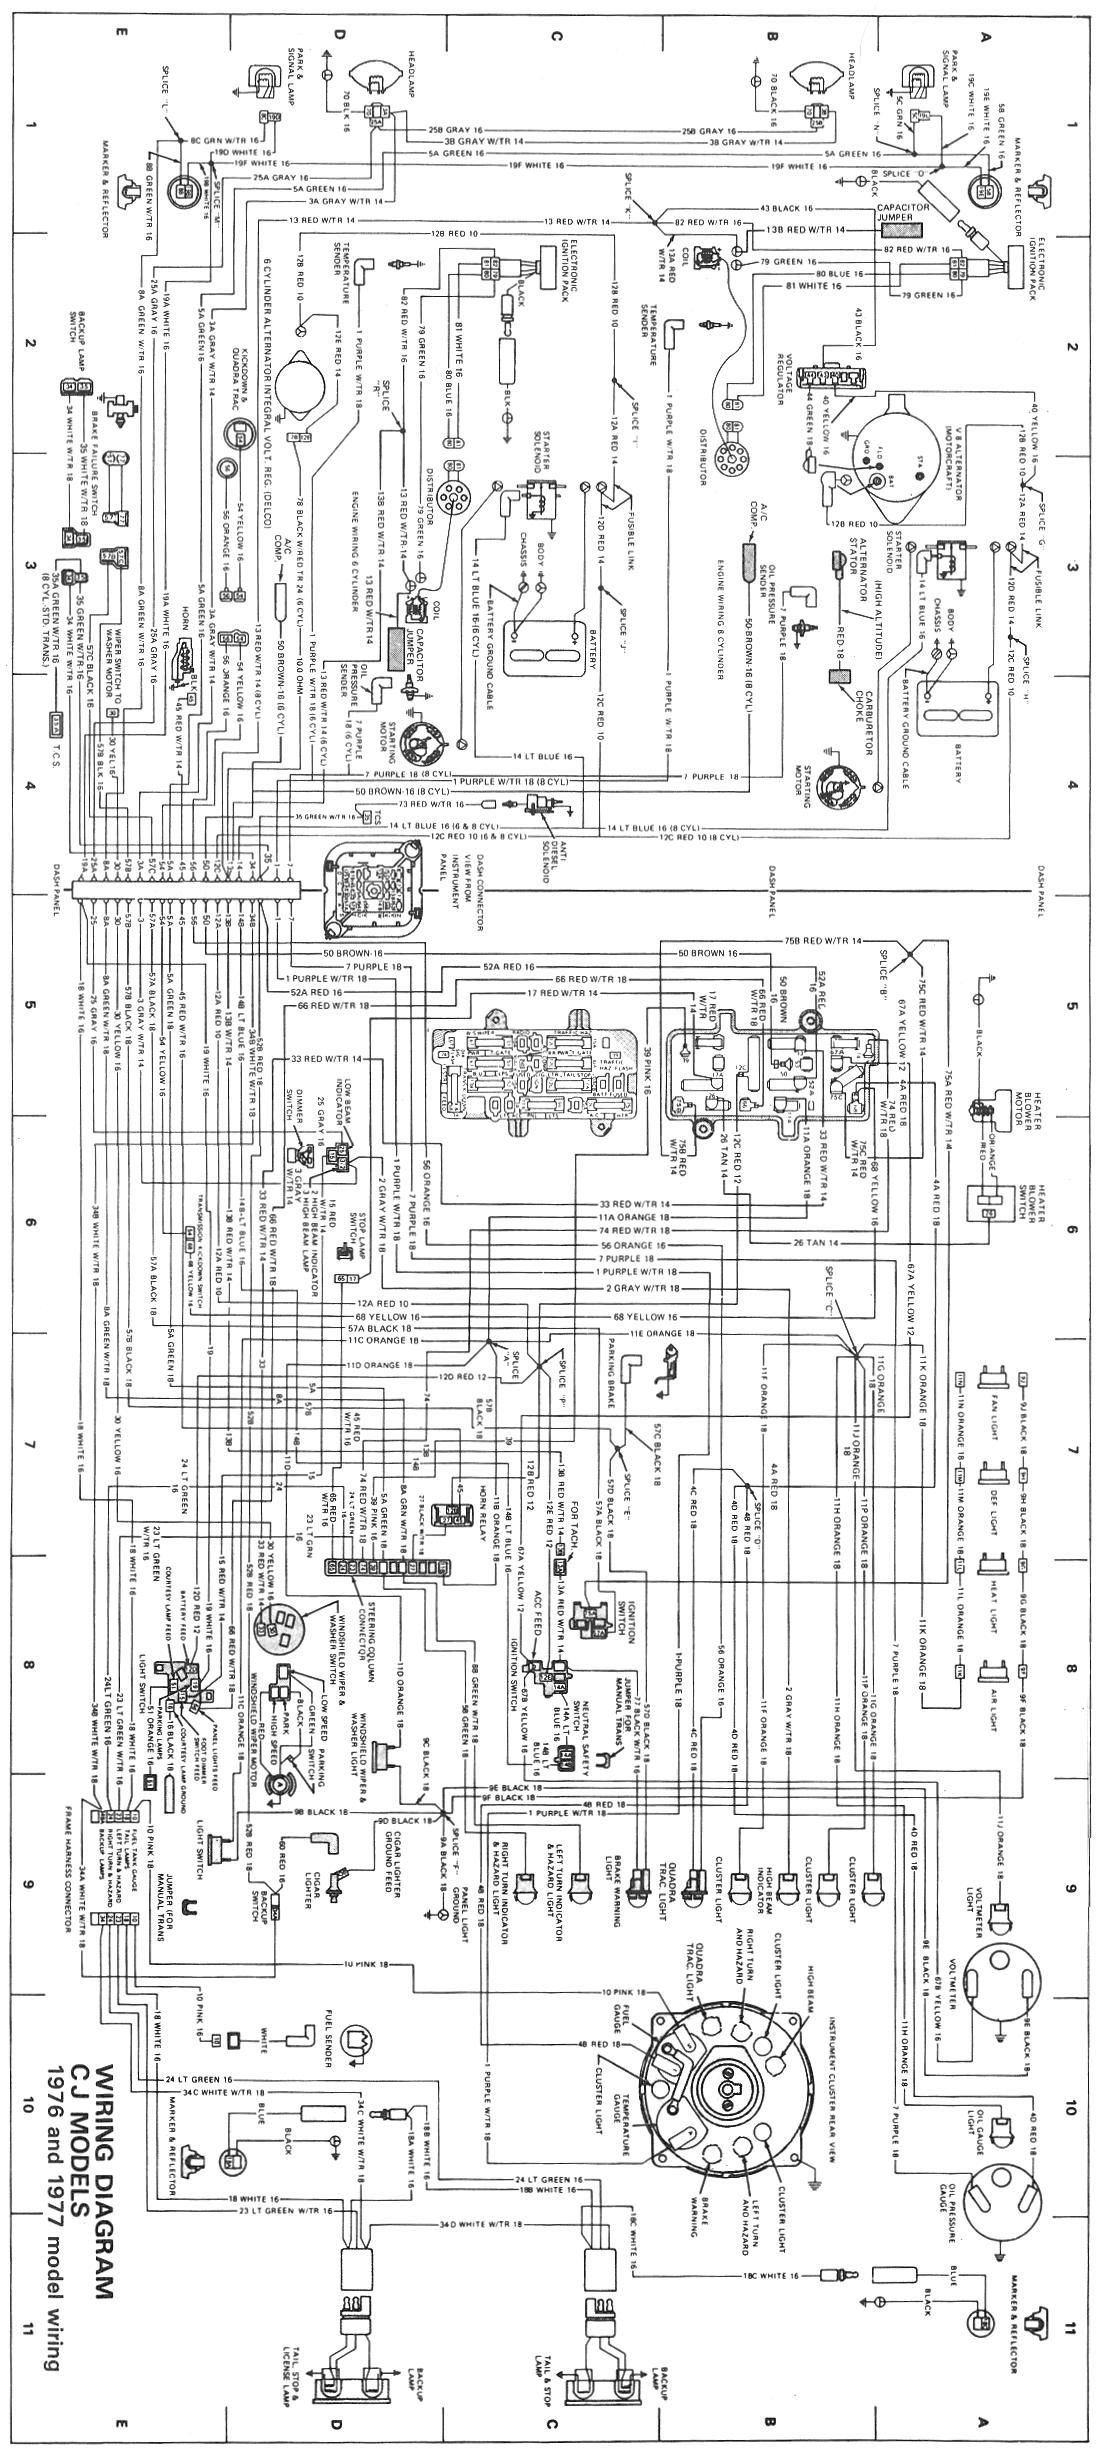 Jeep Cj5 Wiring Schematic Data Wiring Schema 1986 Bmw 318I Wiring Diagram  1986 Jeep Cherokee Wiring Diagram Schematic